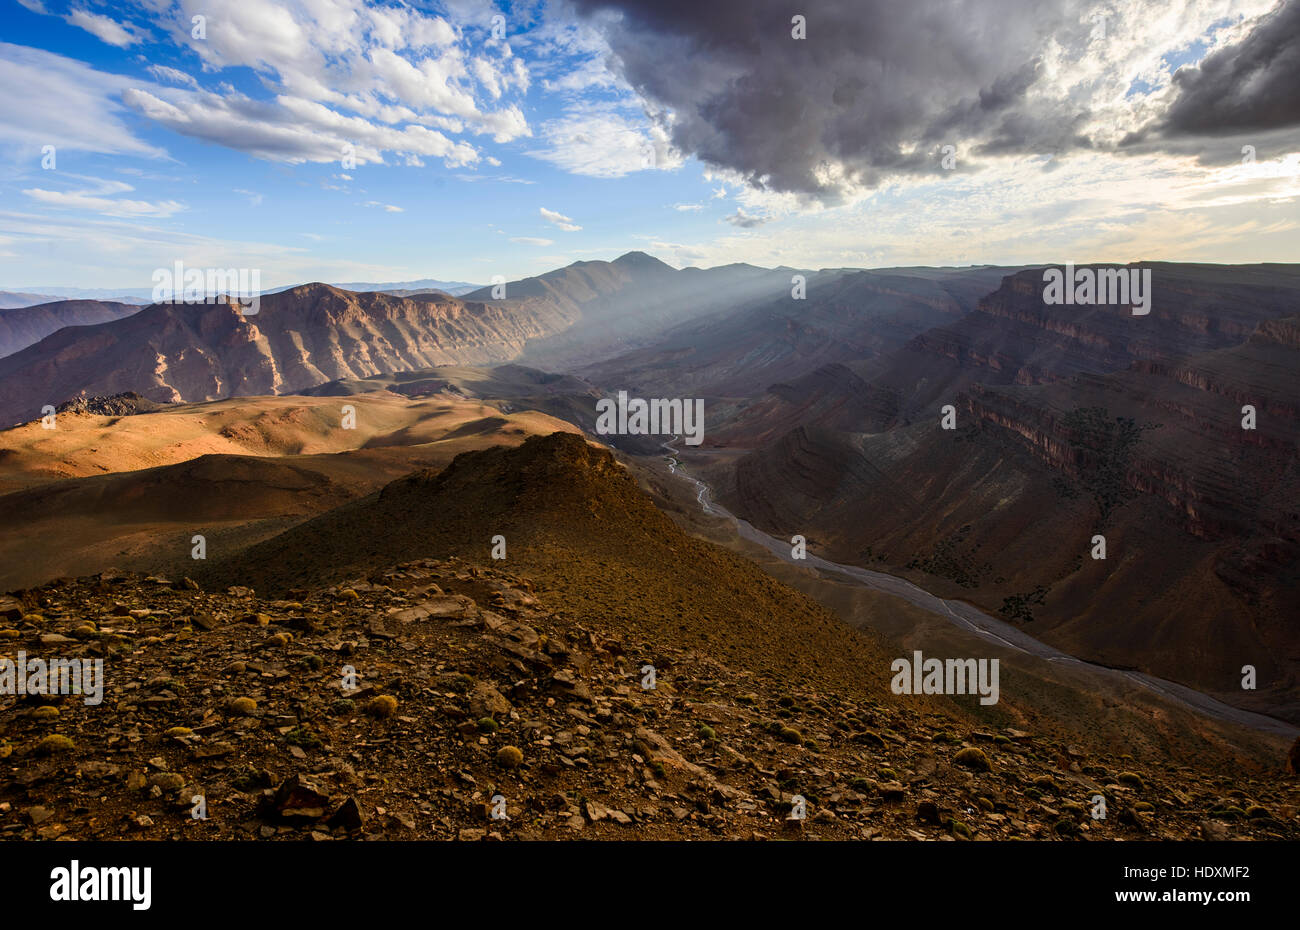 Canyons of the High-Atlas, Morocco - Stock Image